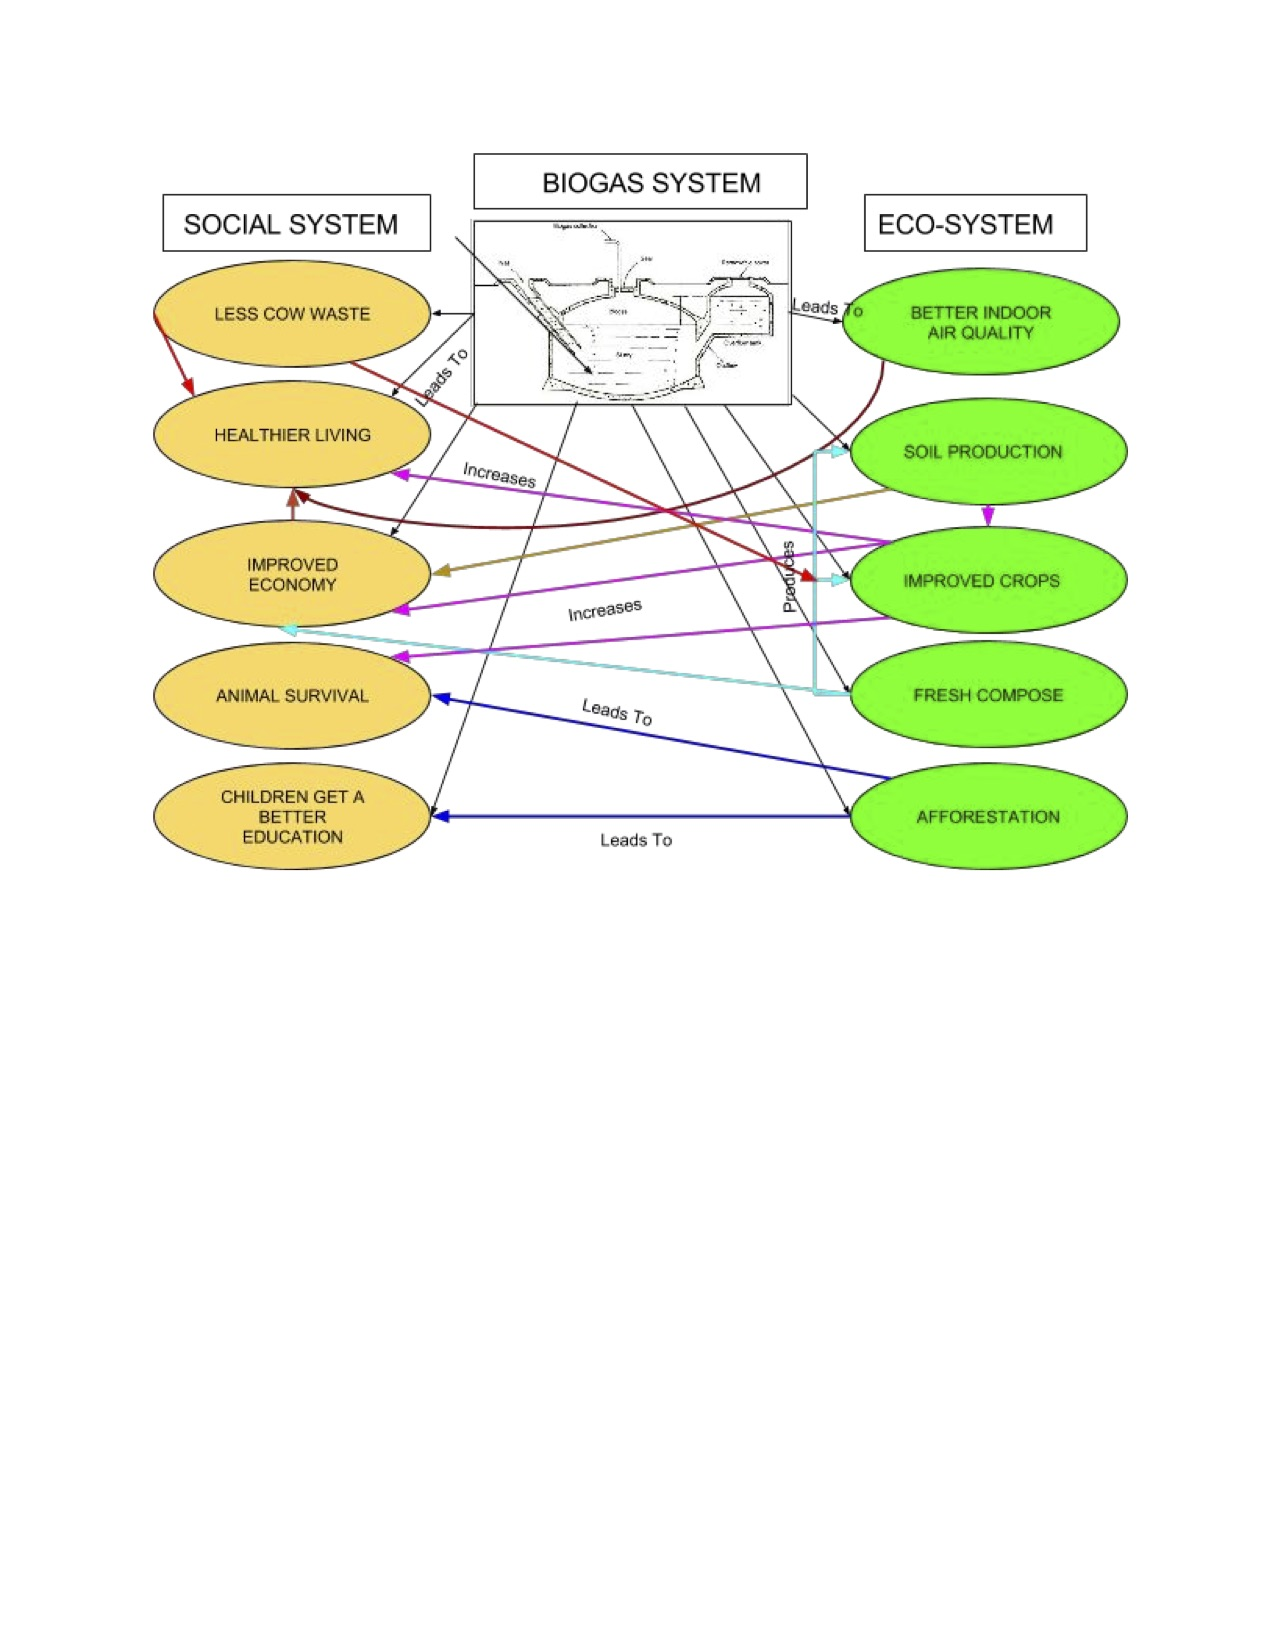 Systems Diagram For Biogas India Schematics Wiring Diagrams Biogasplantdiagram Geog 30 Our Perspectives Generator Plant